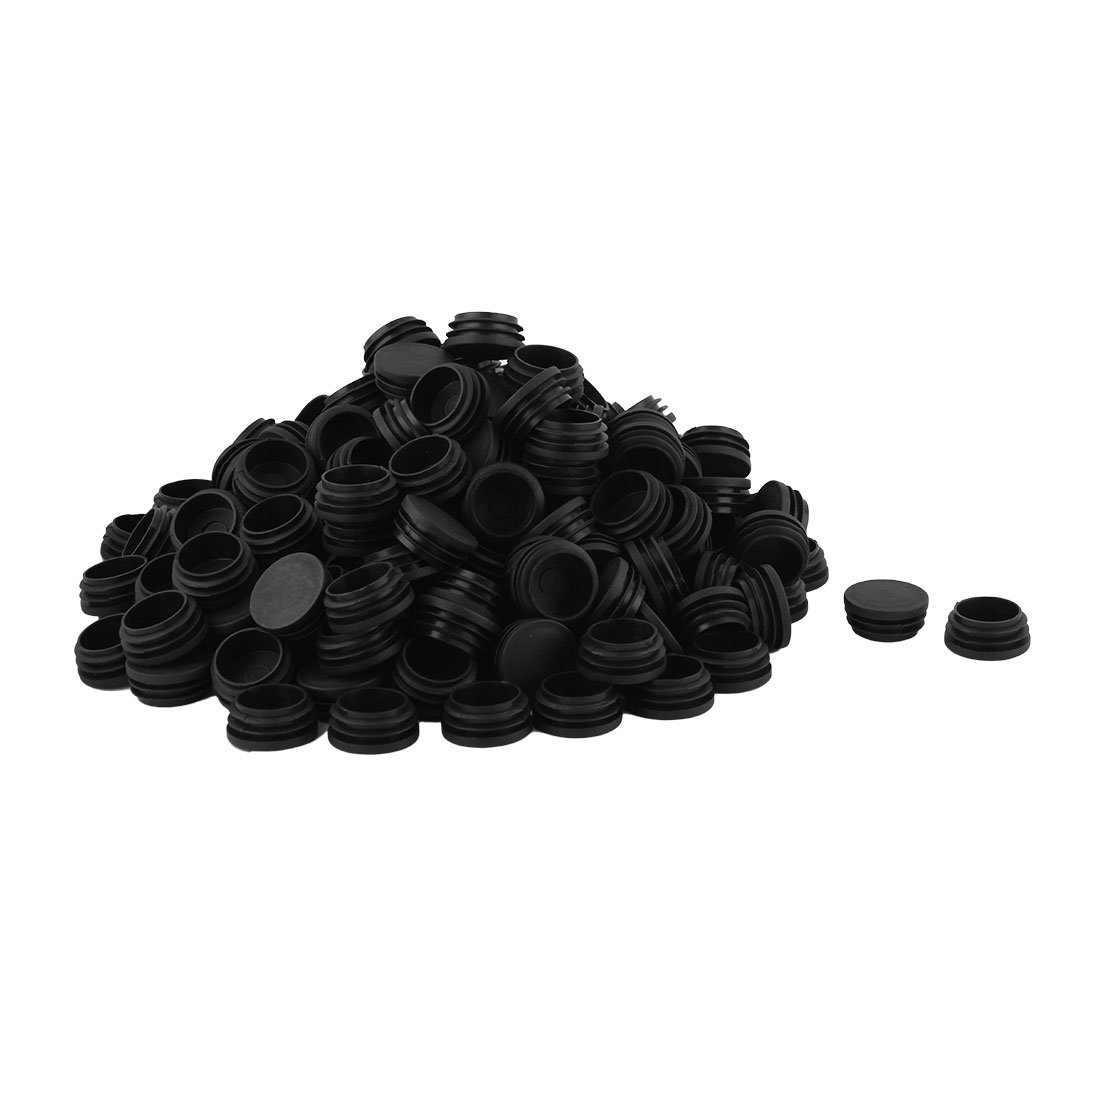 uxcell Plastic Home Office Round Shaped Table Chair Leg Tube Insert 38mm Dia 200pcs Black